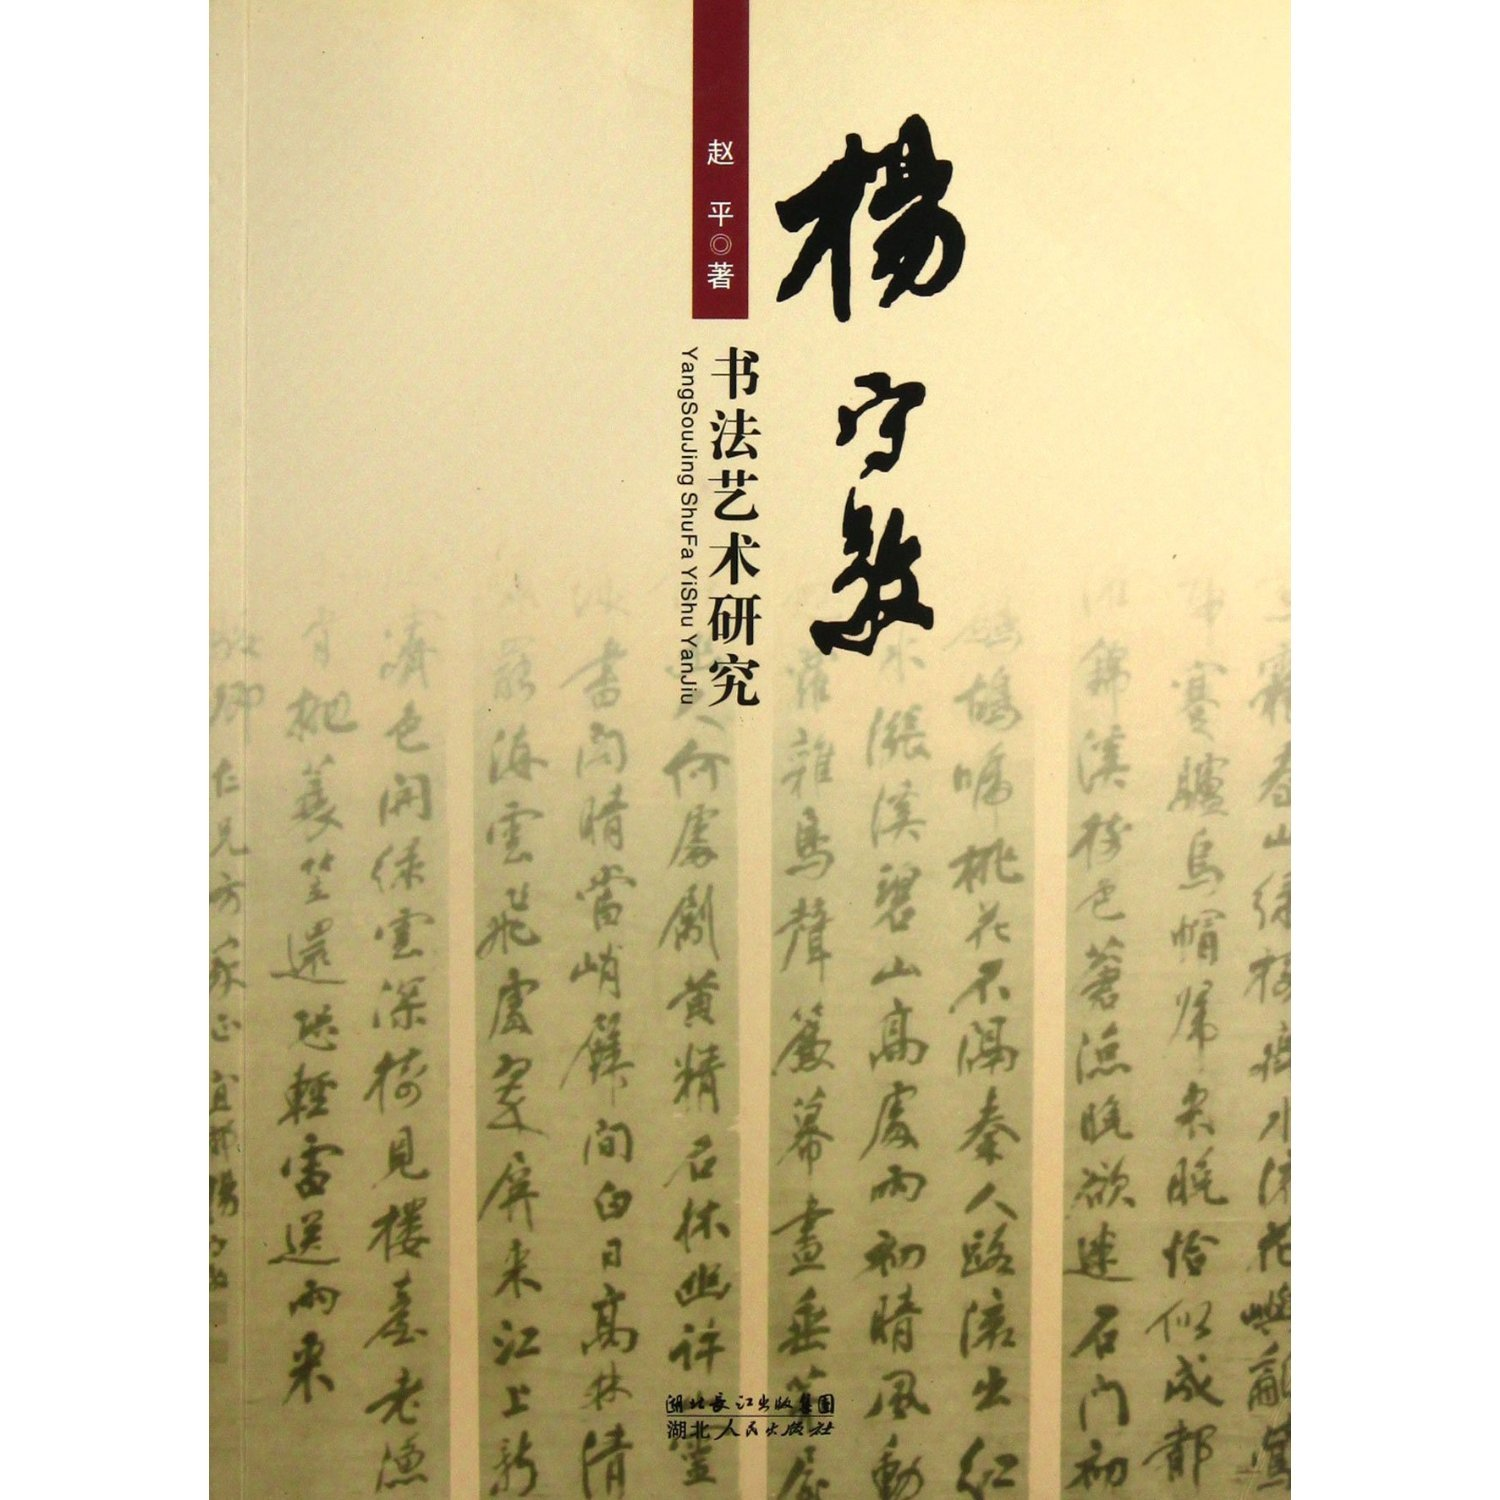 Download Calligraphic Art Research on Yang Shoujing (Chinese Edition) PDF